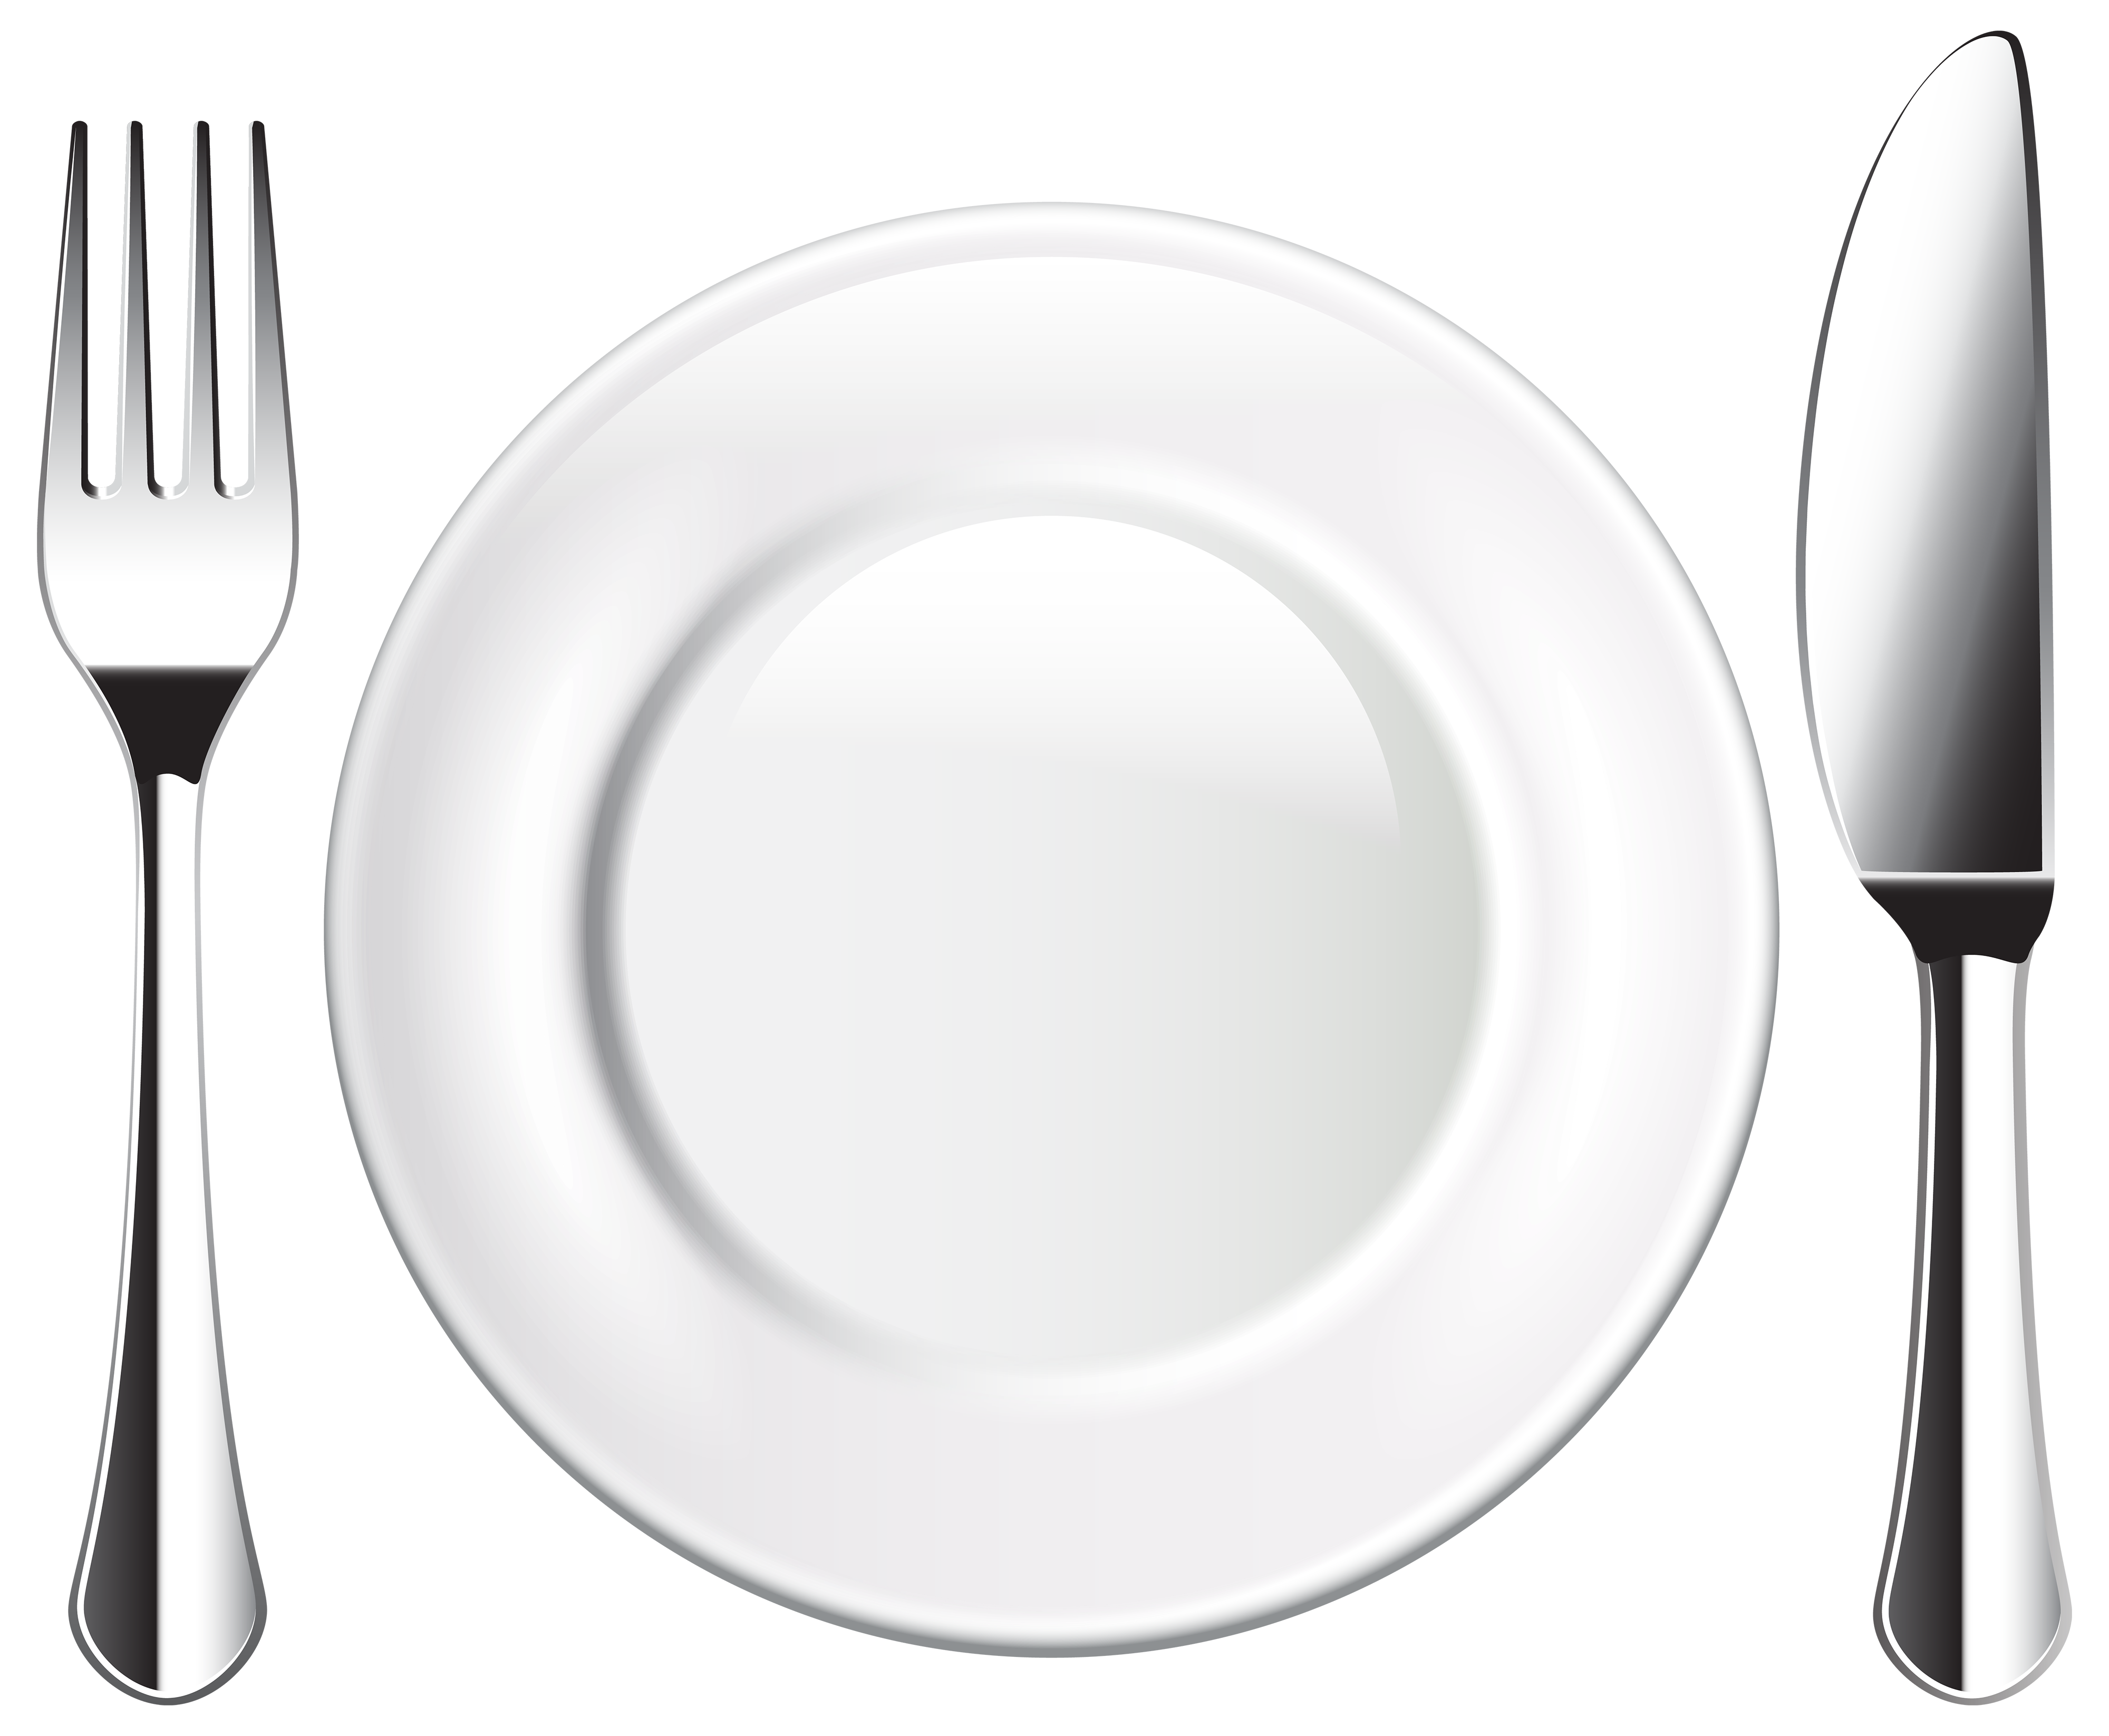 Plate clipart png. Knife and fork best